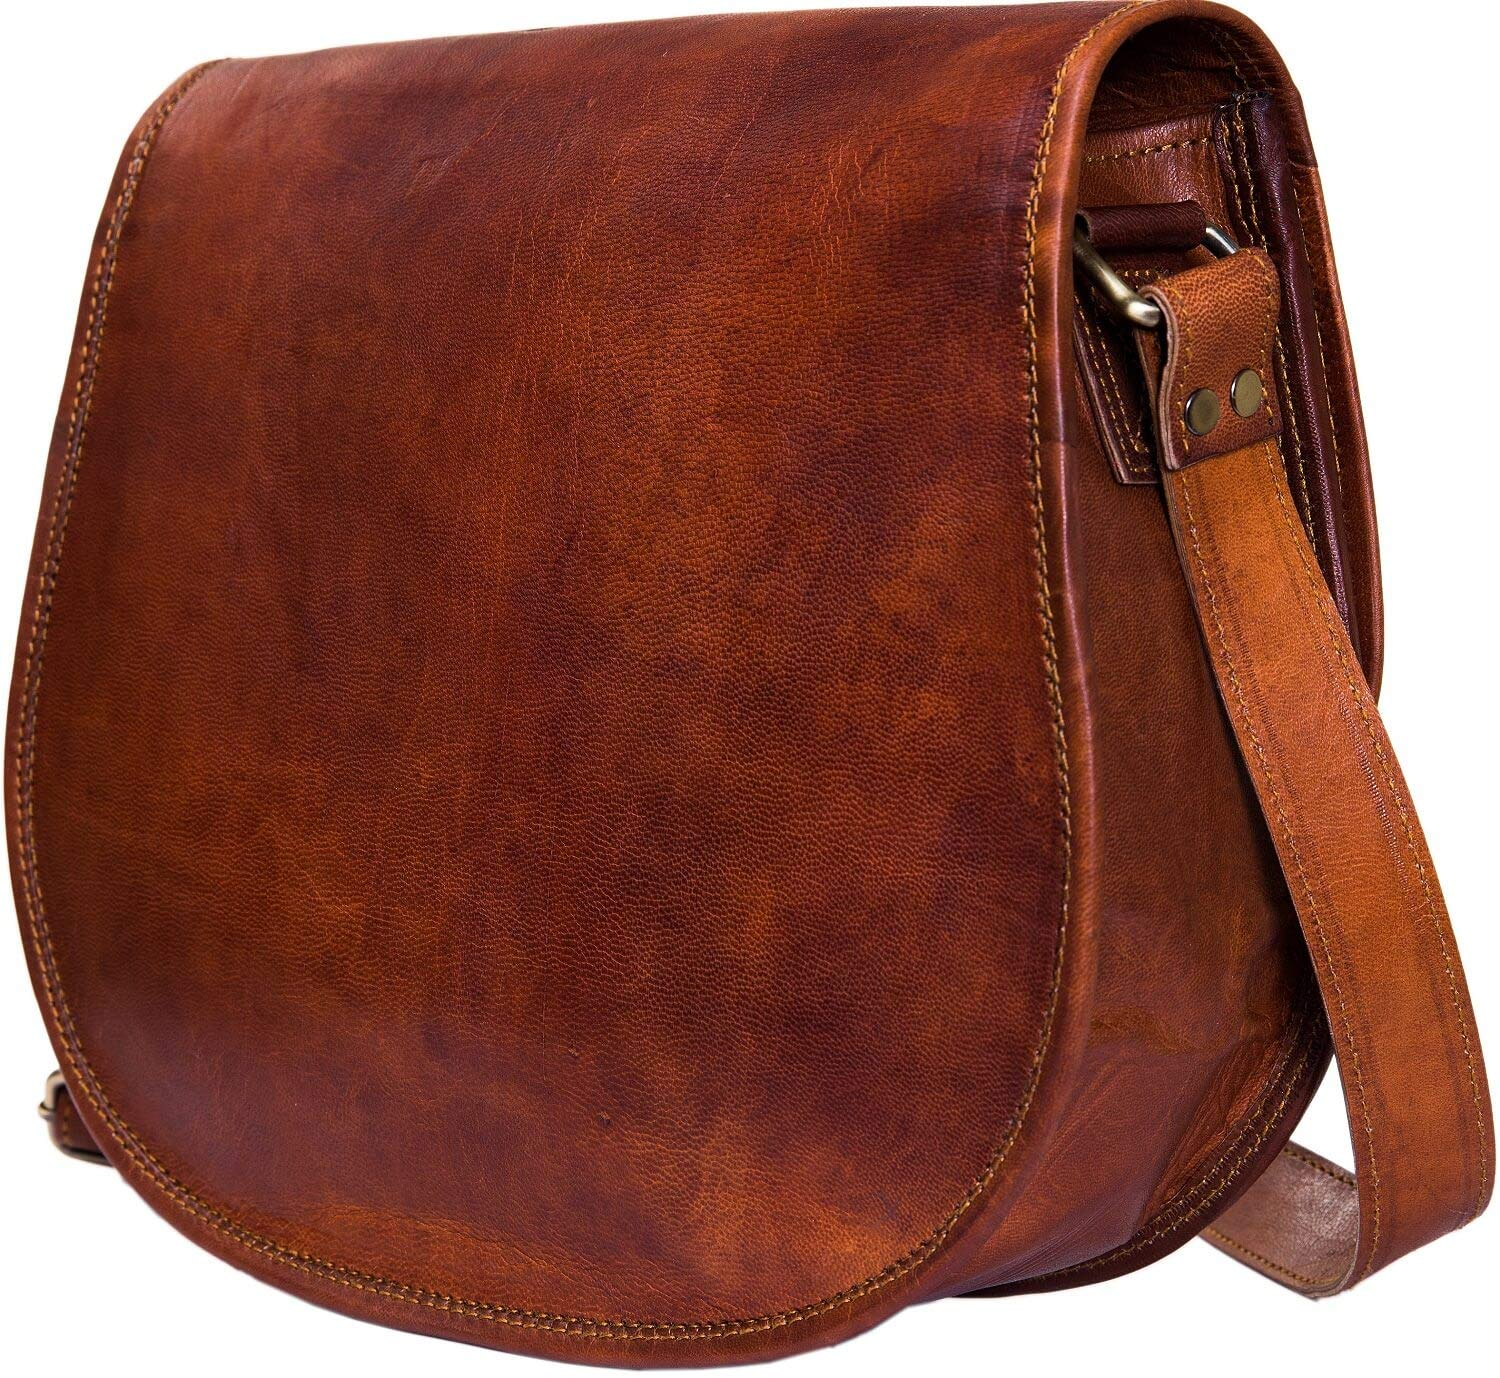 Urban Leather Crossbody Bags for Women Saddle Bag Purse Shoulder Handbags Mother's Day Gift for Young Women & Teen Girls Vintage Brown Genuine Leather Satchel Spring Handbag Small Size 12 inch